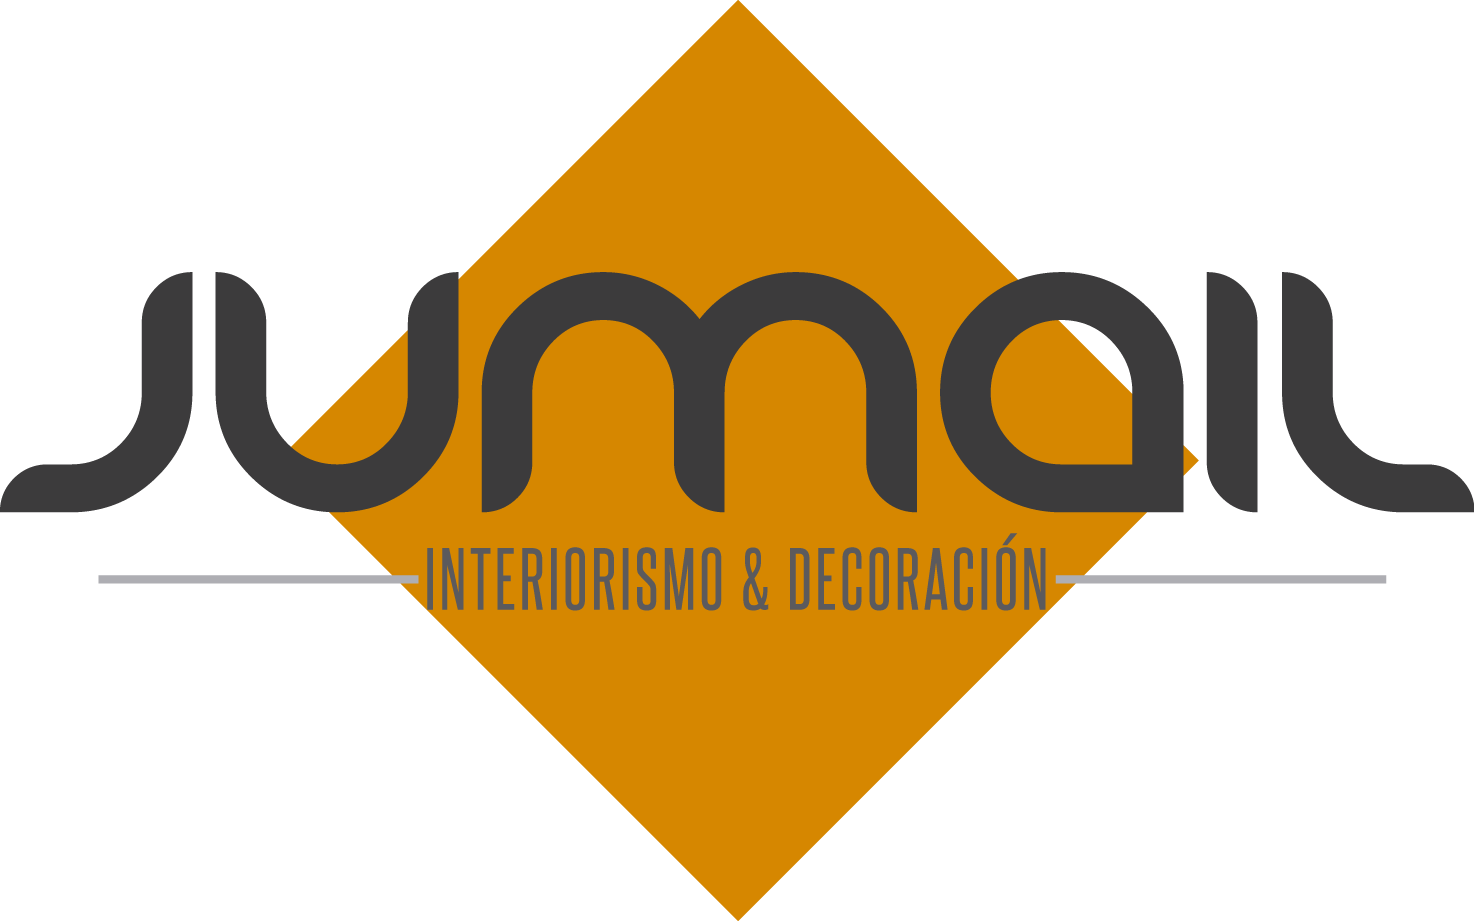 Jumail Interiorismo Y Decoración